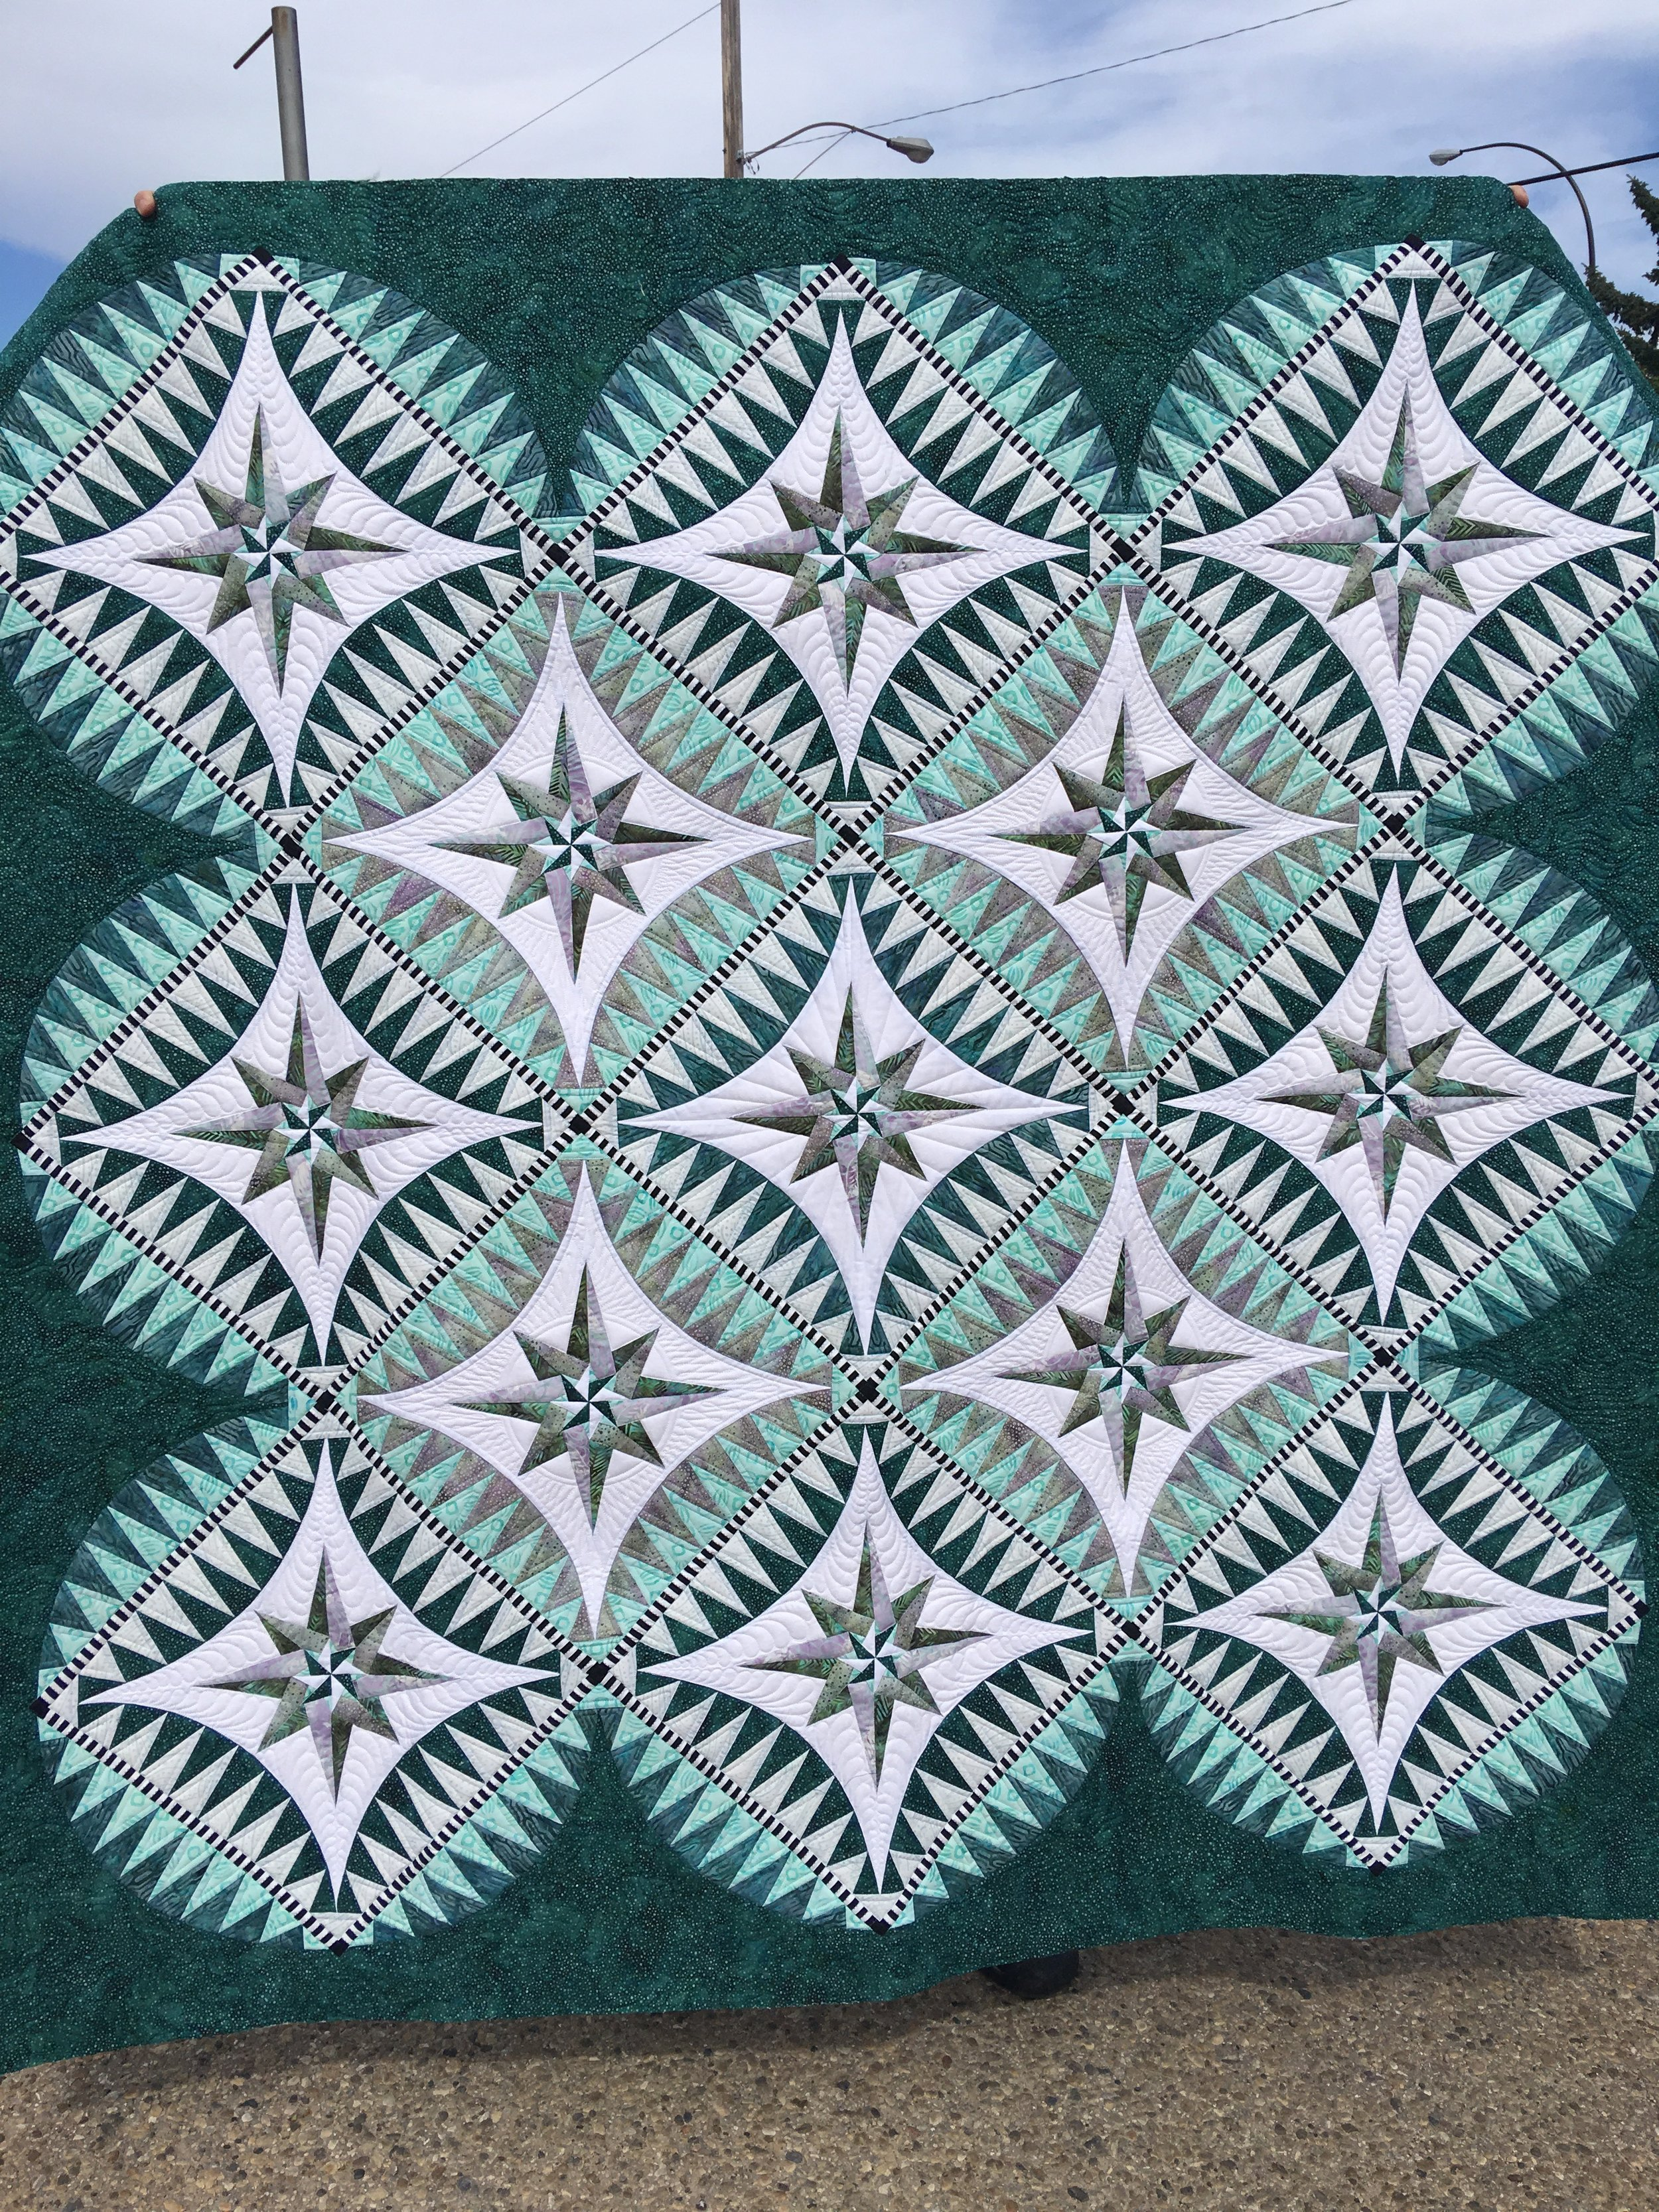 quilts still blue one star bzb ish and this is show patterns quilt then pin more but different spikey from a